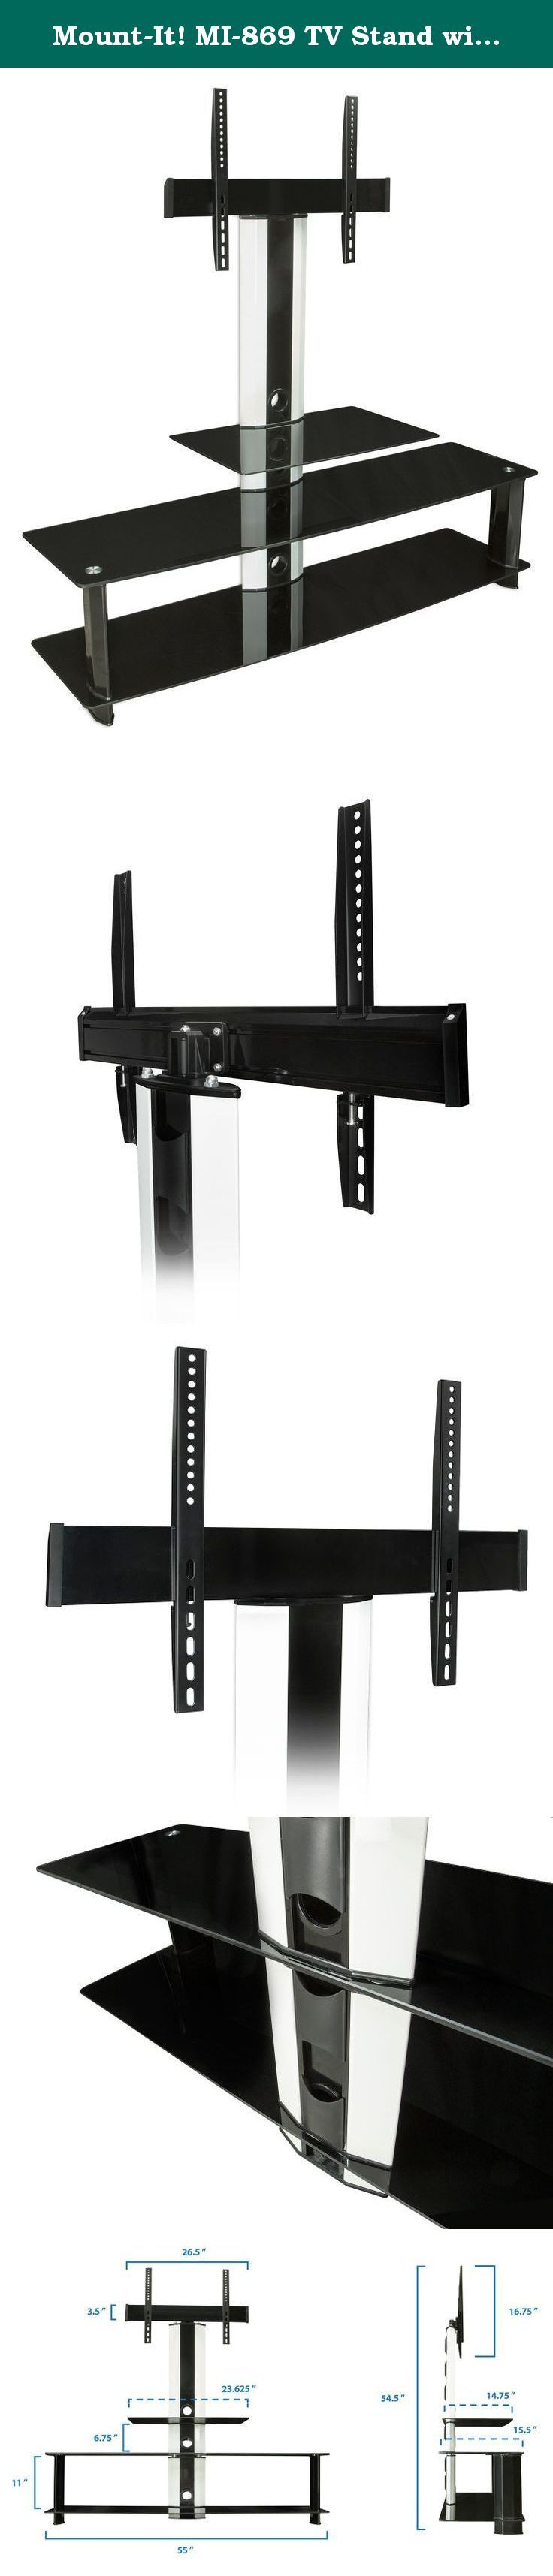 Mount-It! MI-869 TV Stand with Mount, Entertainment Center for Flat Screen TVs Between 32 to 60 Inch, 3 Glass Shelves and Aluminum Columns, VESA Compatible TV Mount, Black/Silver. Mount-It! MI-869 contemporary TV mount and media component stand combo features three beautiful black silk tempered glass shelves with spacious shelving for all of your surround sound system components, Blu-ray player, game consoles, cable box and place other media components. The built-in TV mount is VESA...